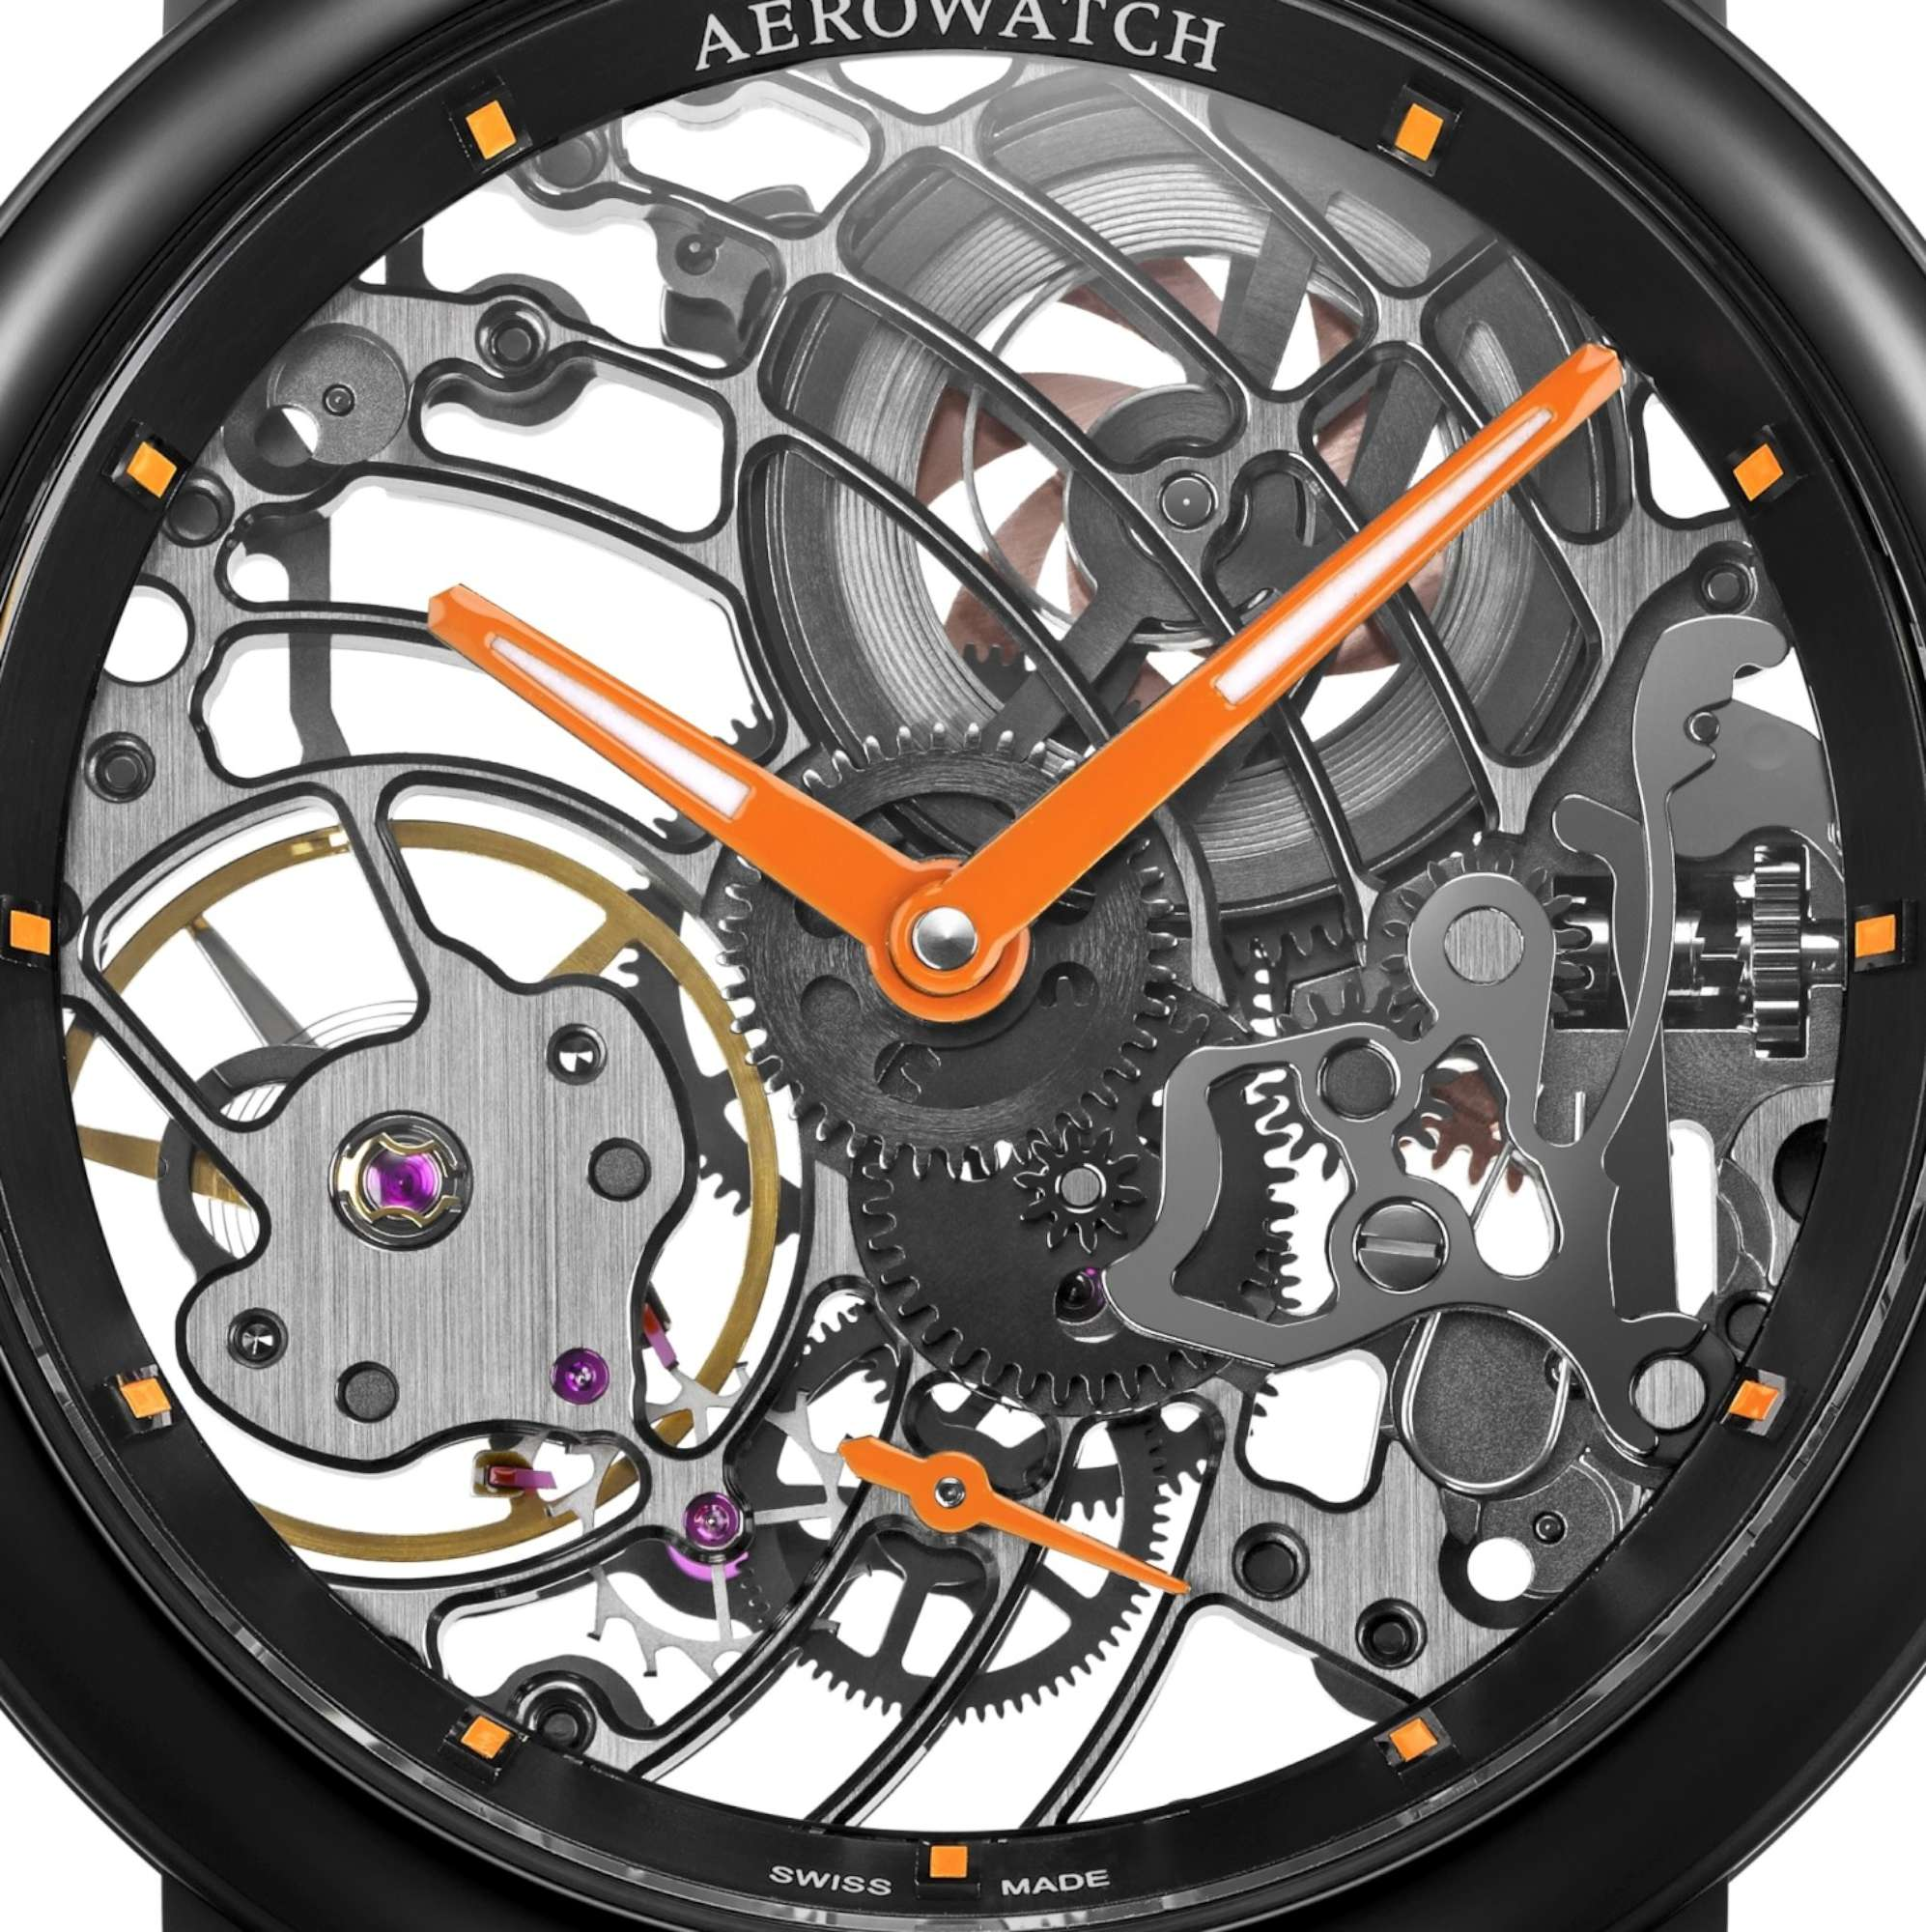 aerowatch_detail-2000